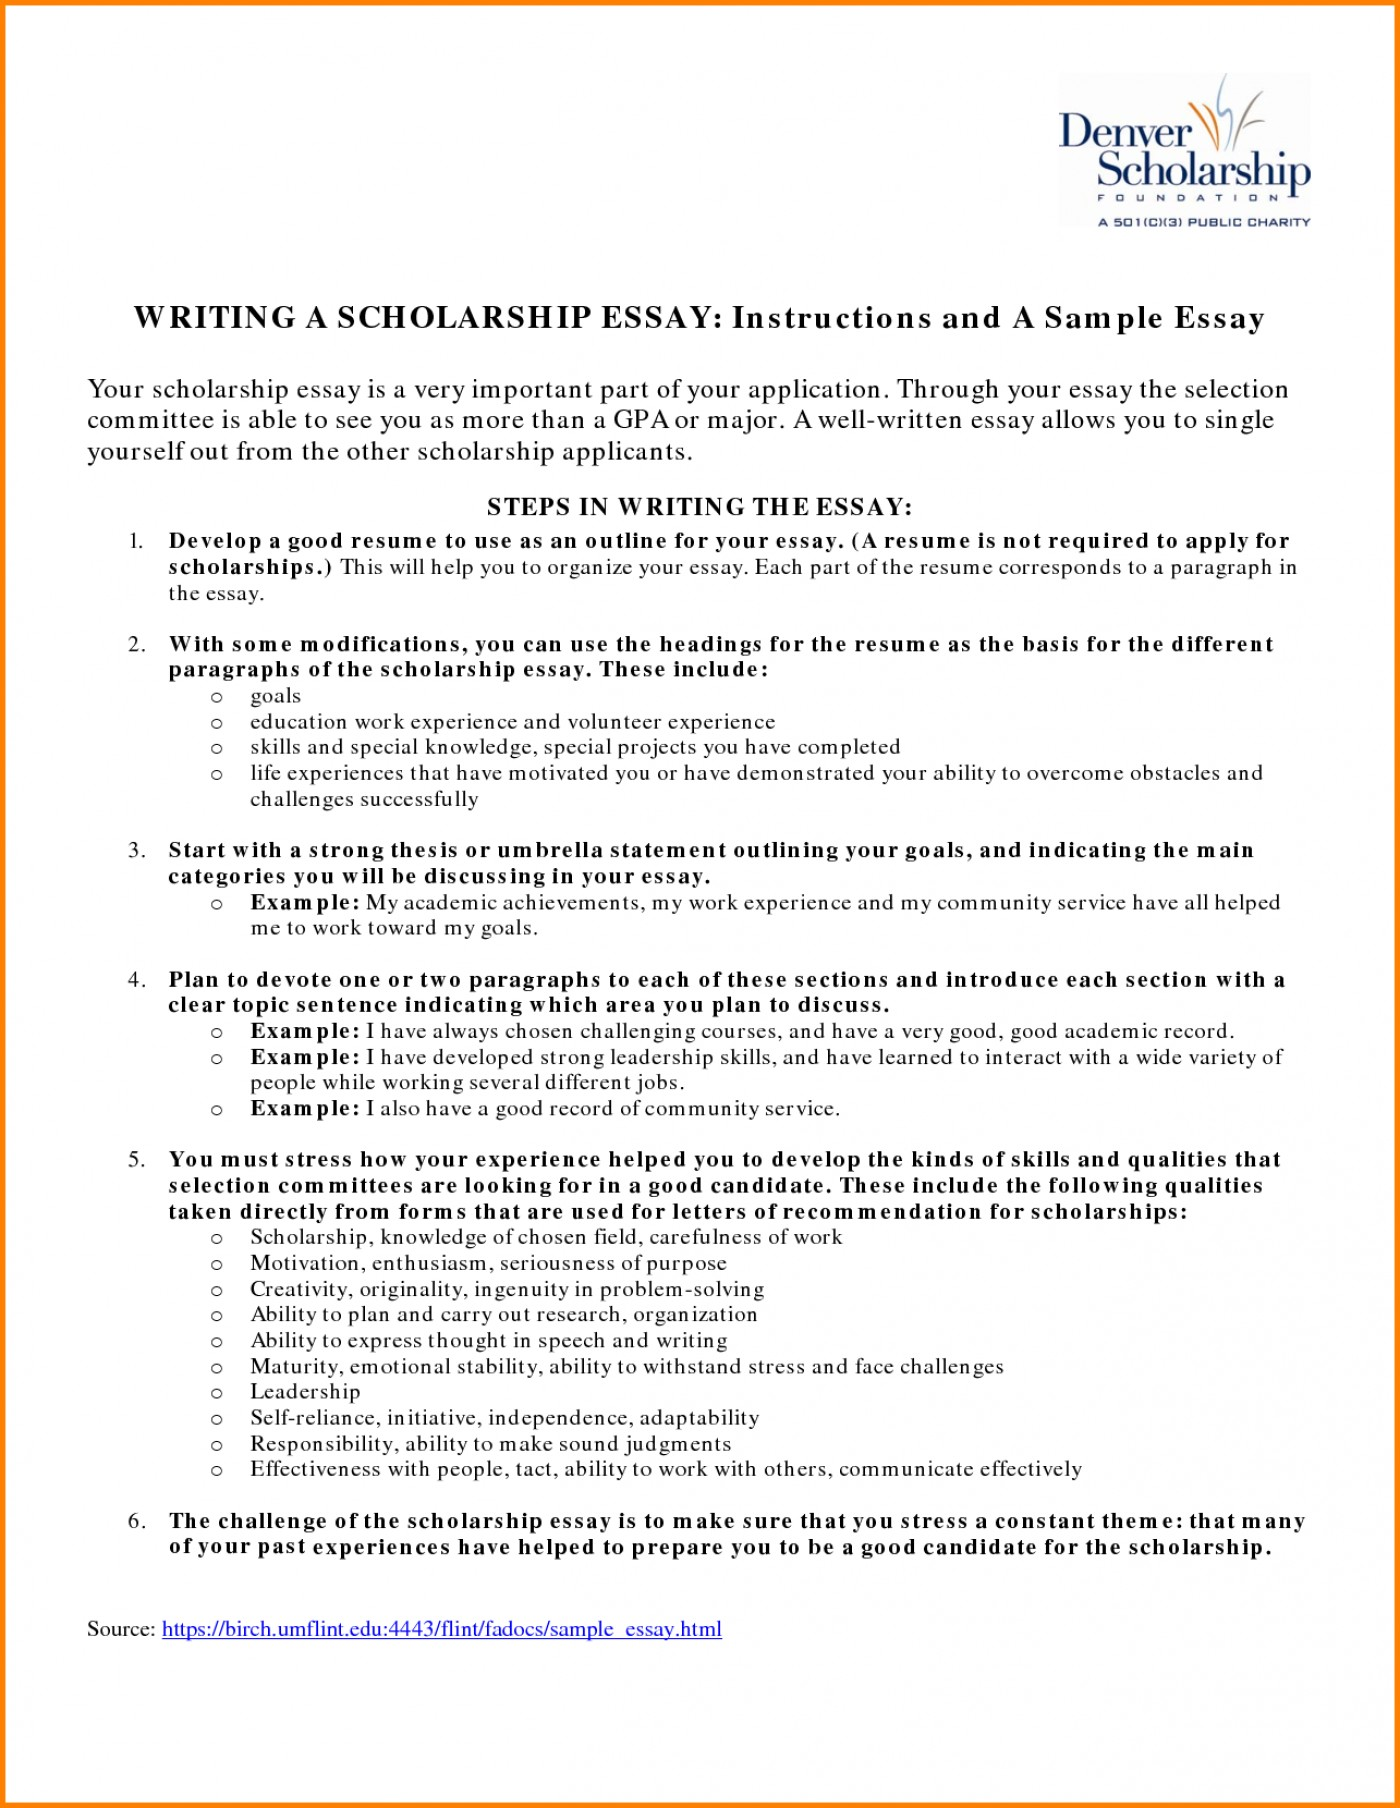 009 Essay Example Fair Resume Examples For Scholarships In Scholarship Sample Of Awful Essays High School Seniors 500 Words 1400